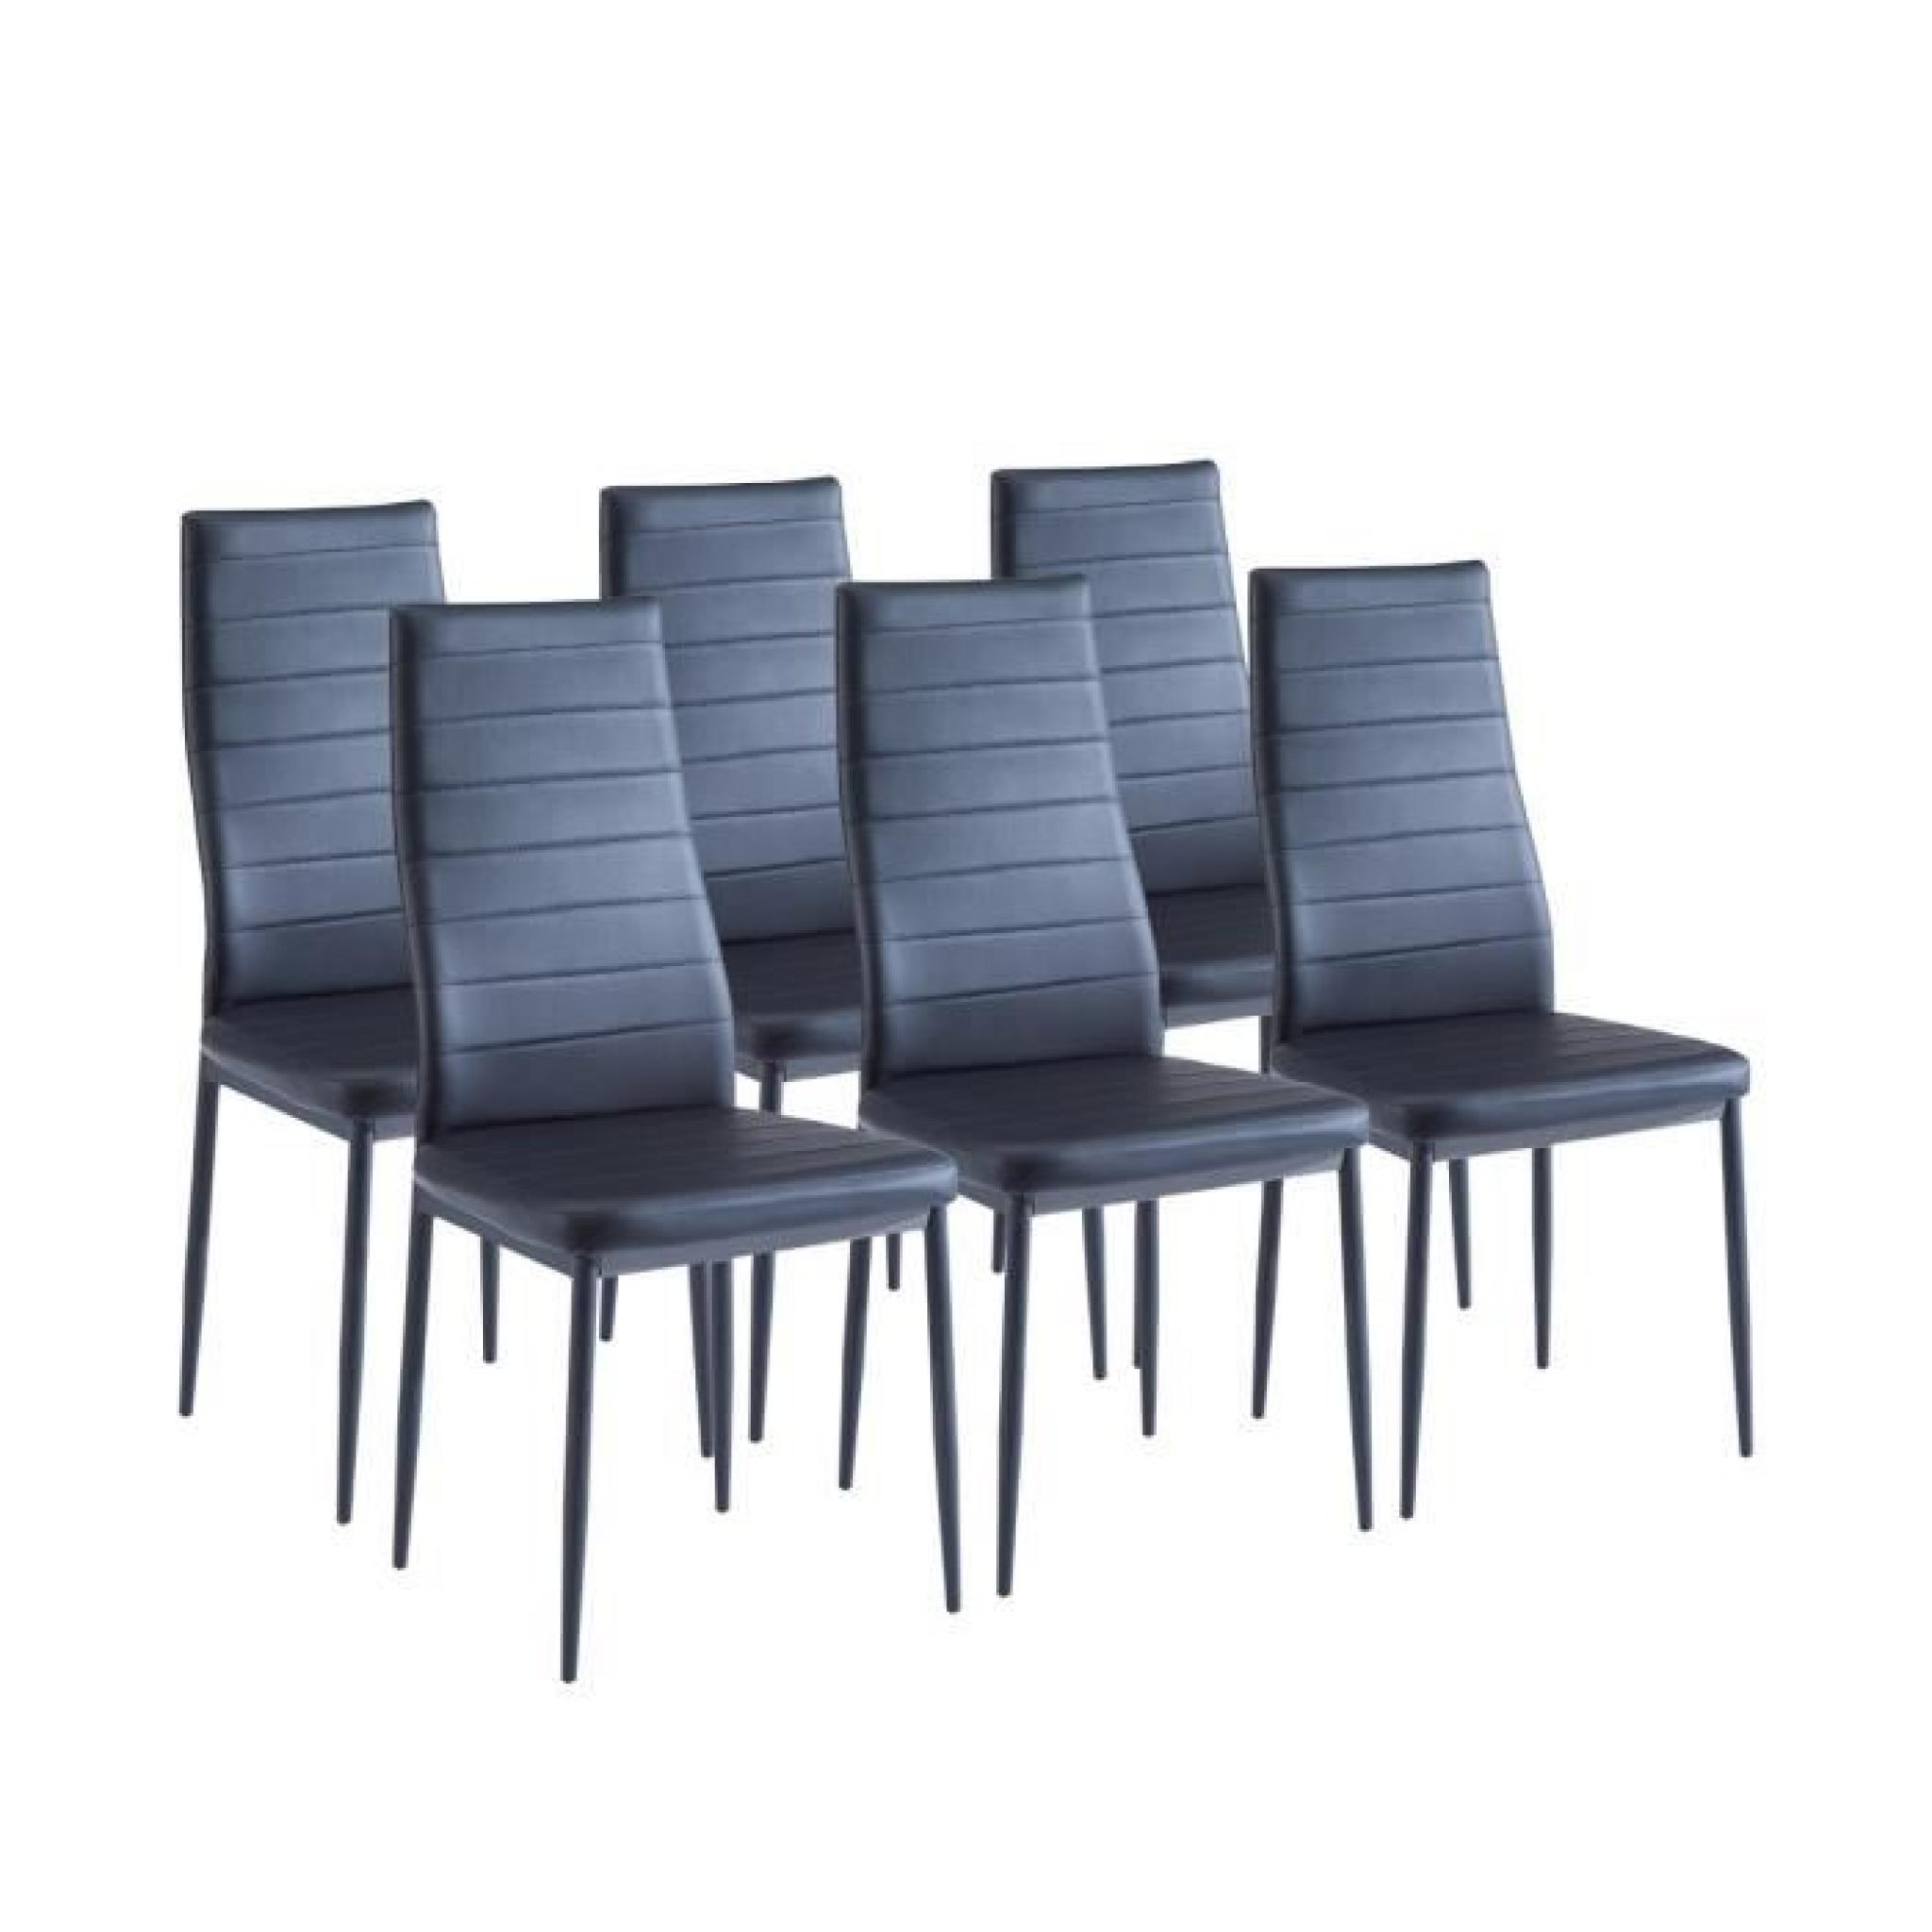 sam lot de 6 chaises de salle manger noires achat. Black Bedroom Furniture Sets. Home Design Ideas